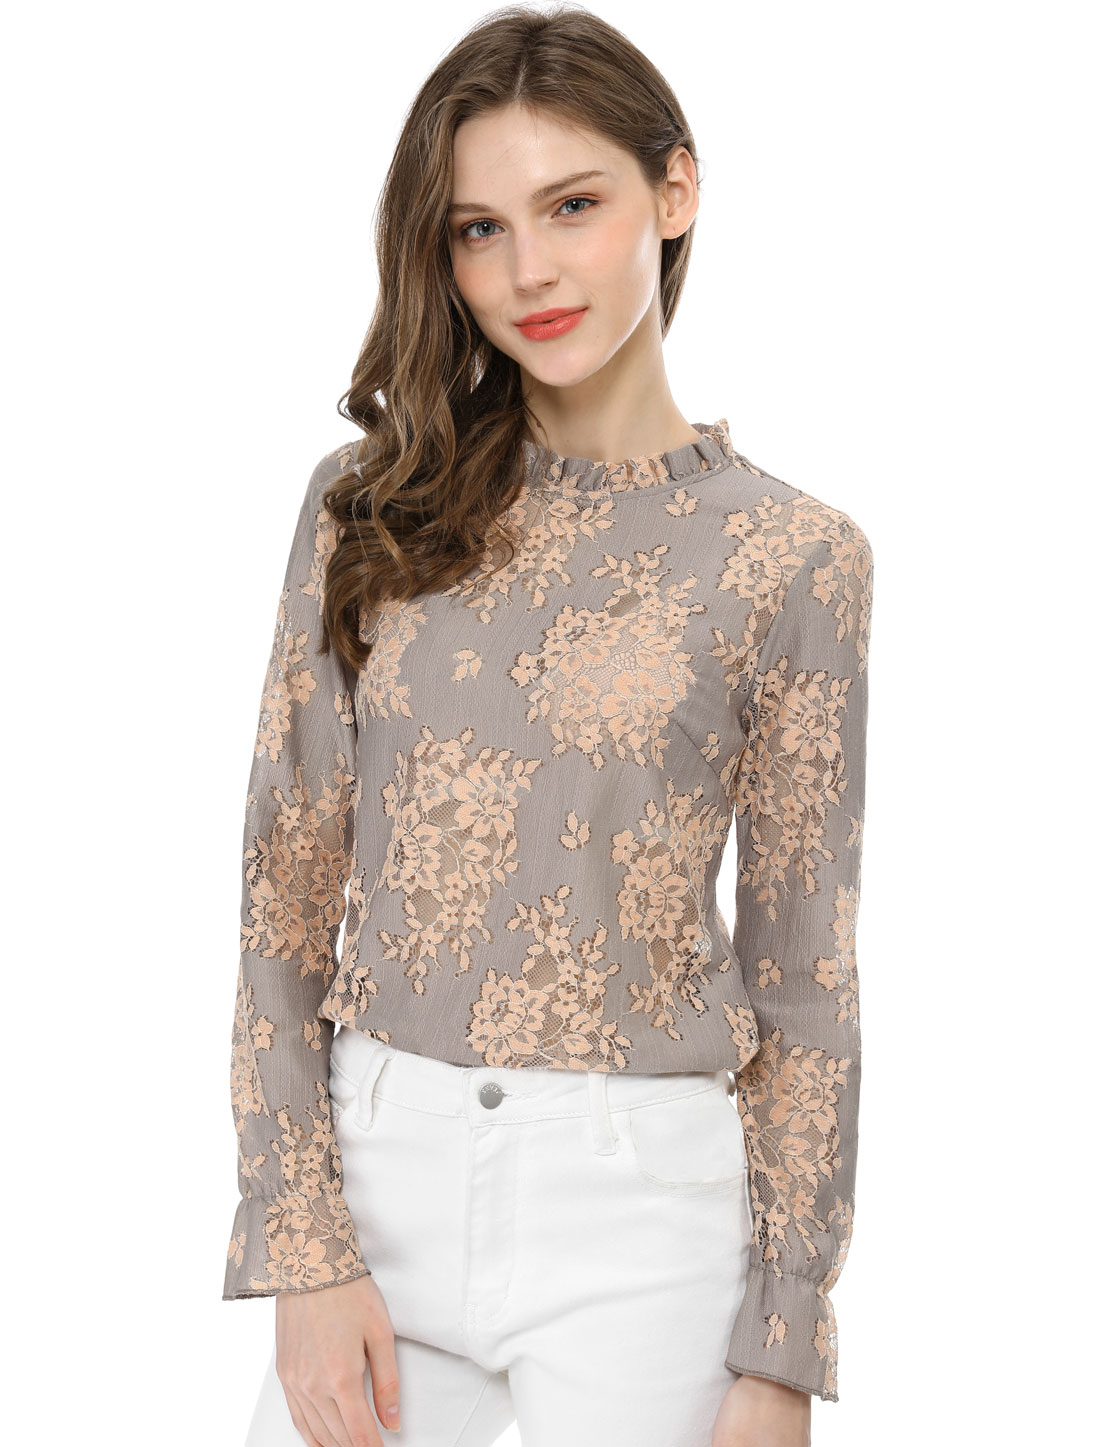 Allegra K Womens Lace Sheer Floral Color Block Blouse Purple M (US 10)